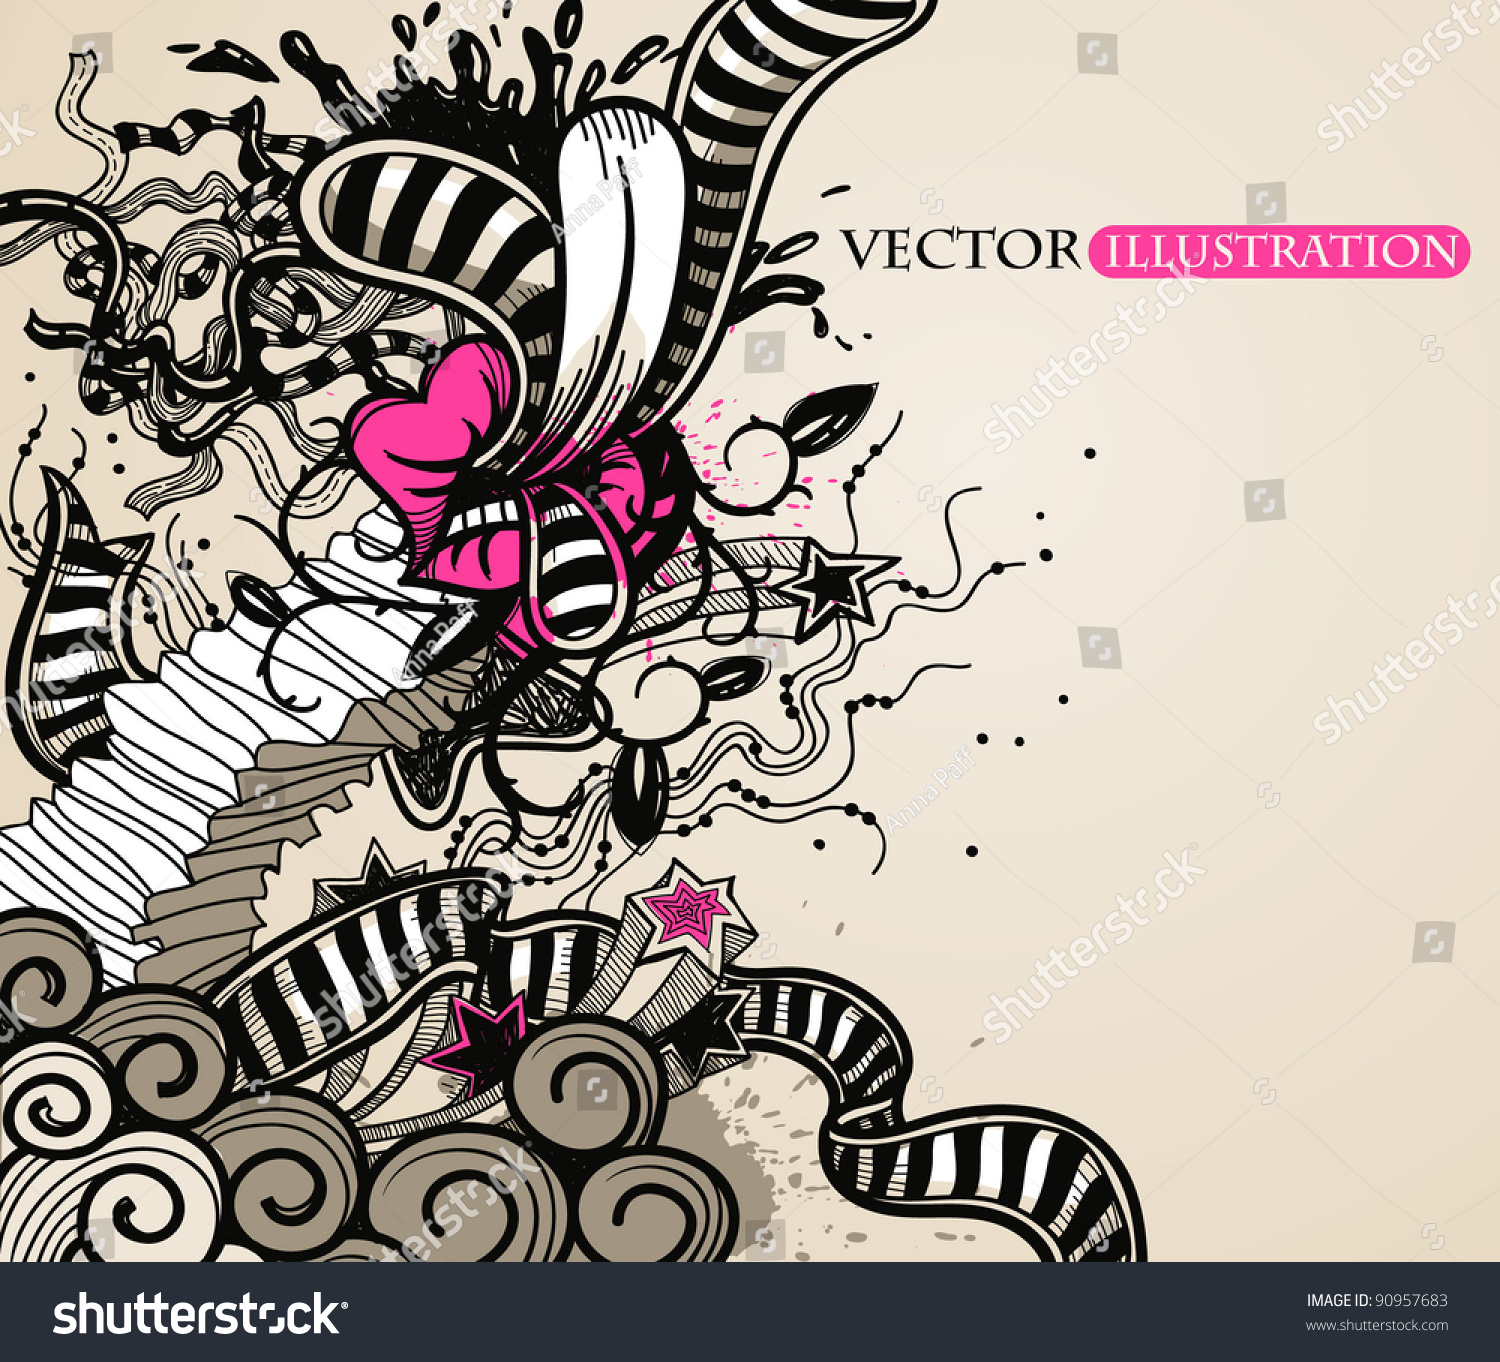 abstract vector illustration vintage style stock vector